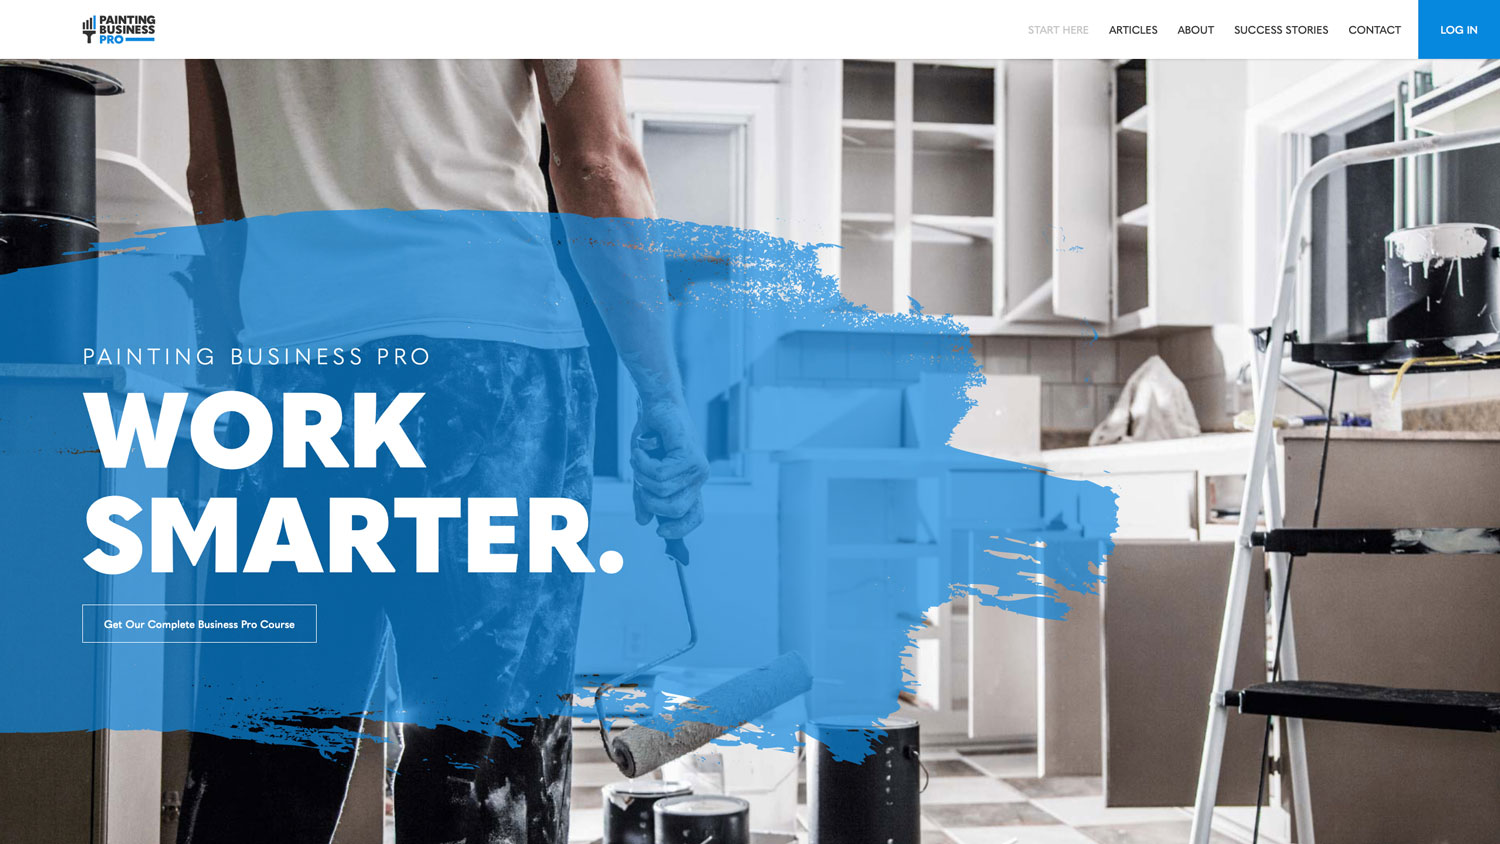 Painting Business Pro